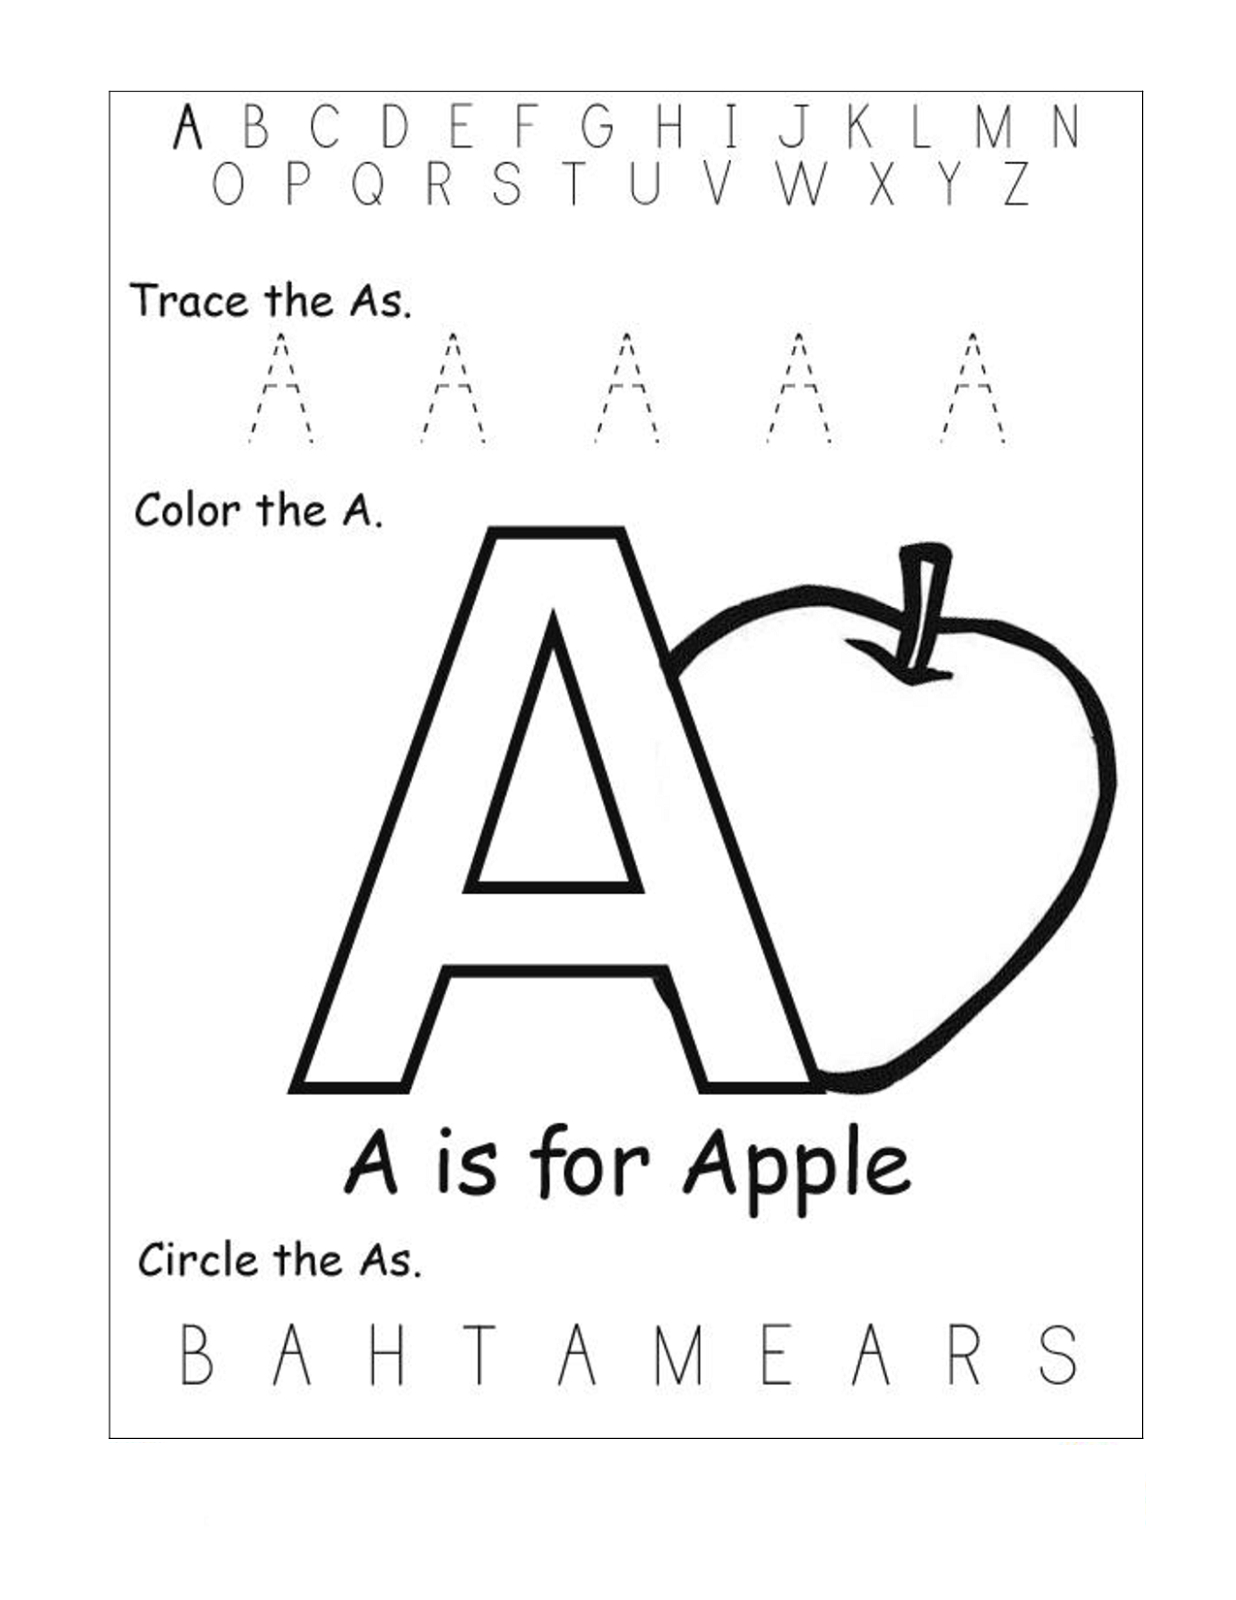 Free Abc Worksheets For Pre K | Activity Shelter - Free Printable Pre K Activities